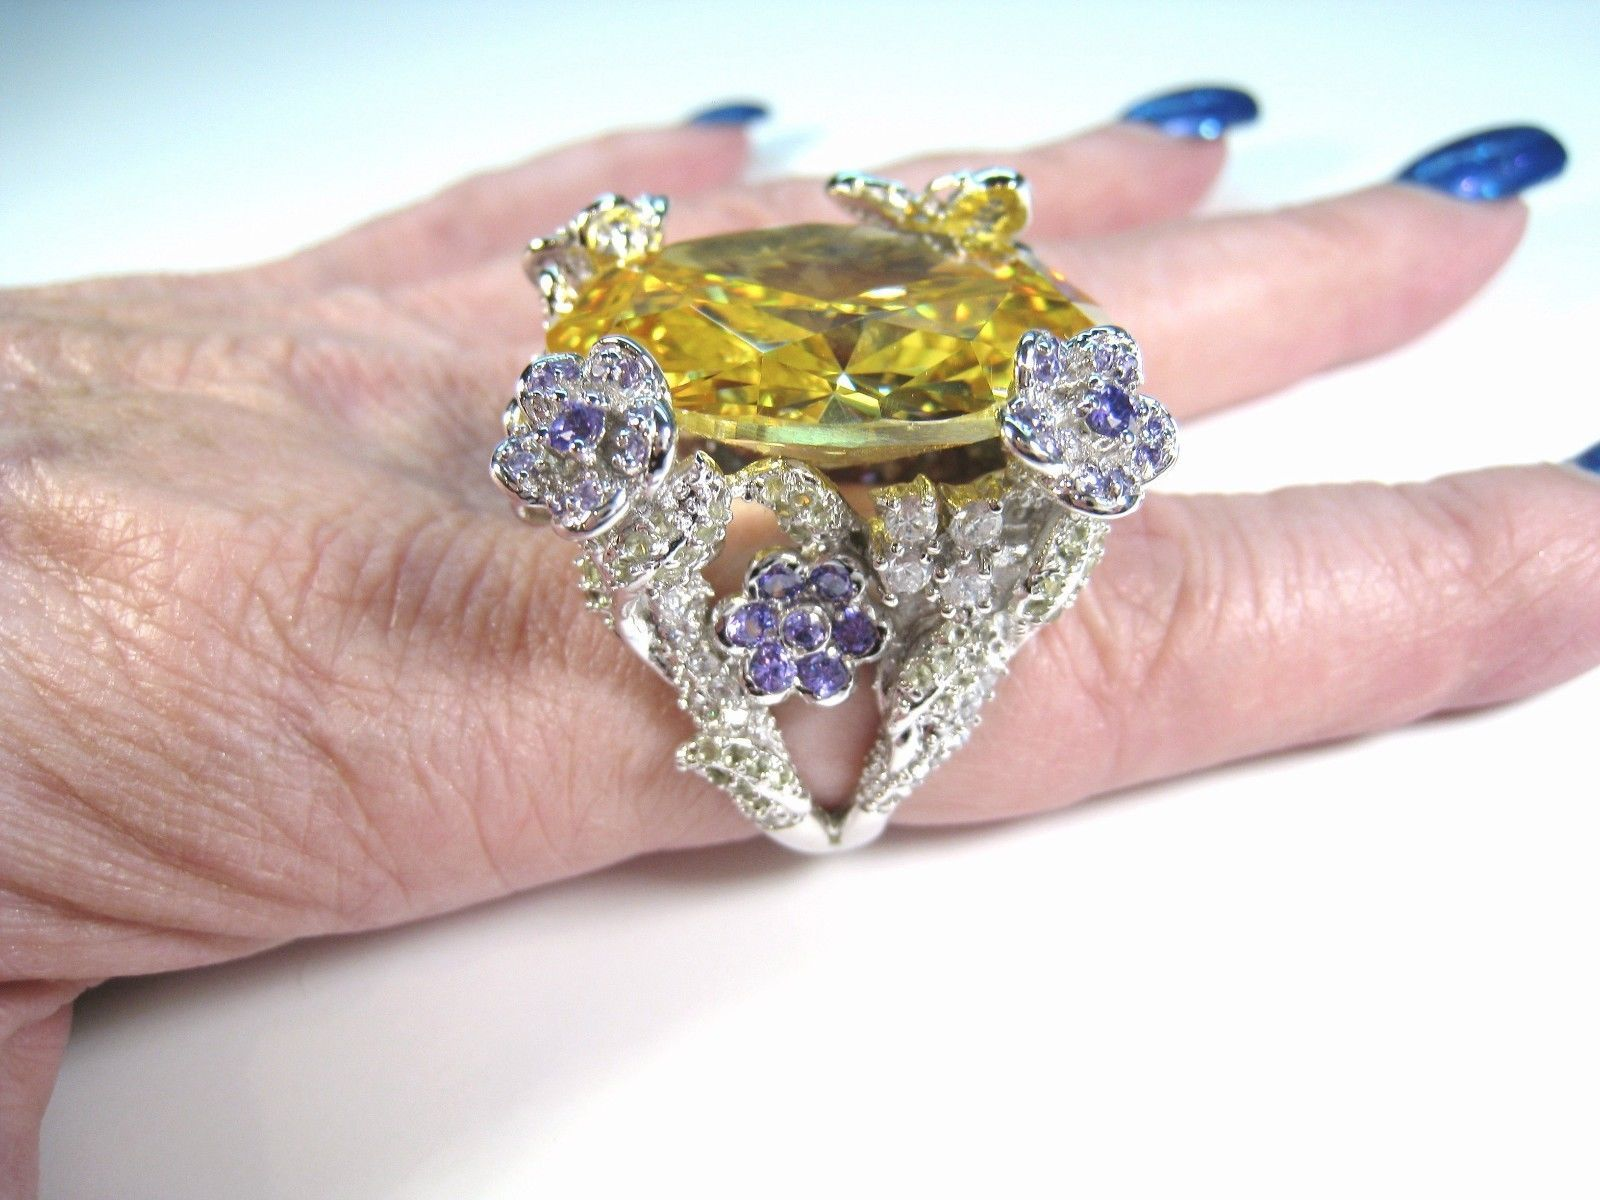 CANARY YELLOW CUBIC ZIRCONIA FLOWER & BUTTERFLY RING sz 8 - 925 ...